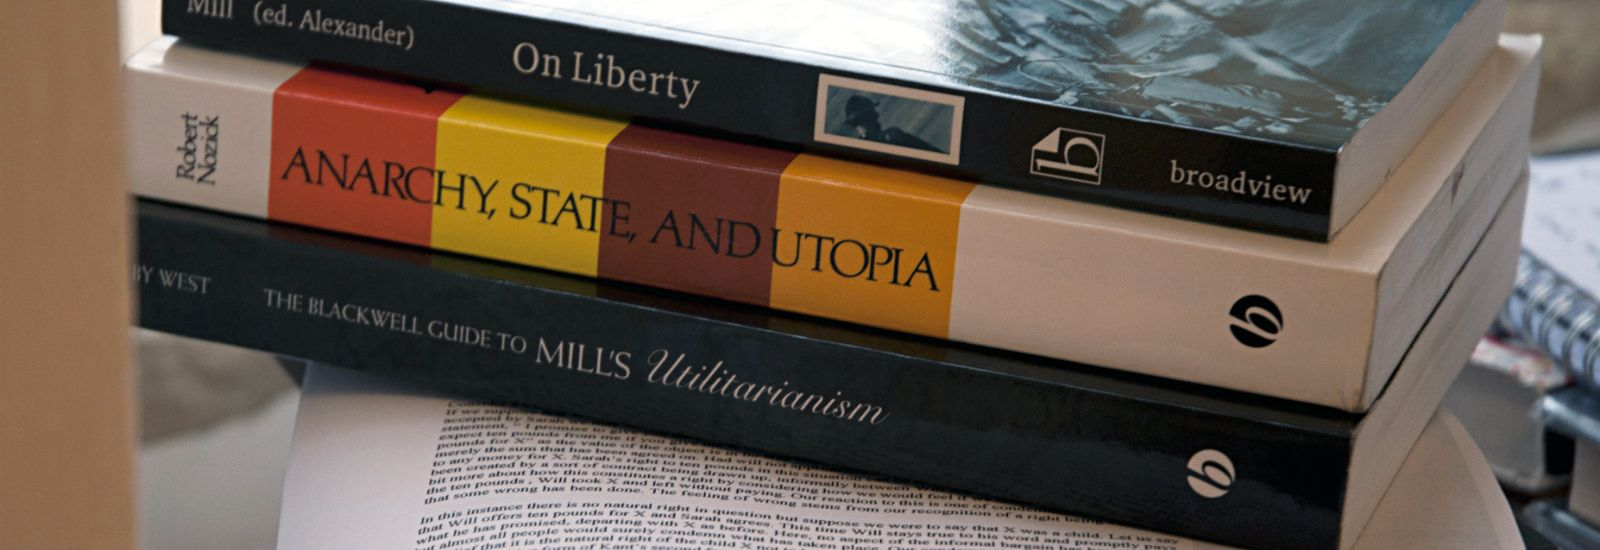 A pile of three political philosophy books